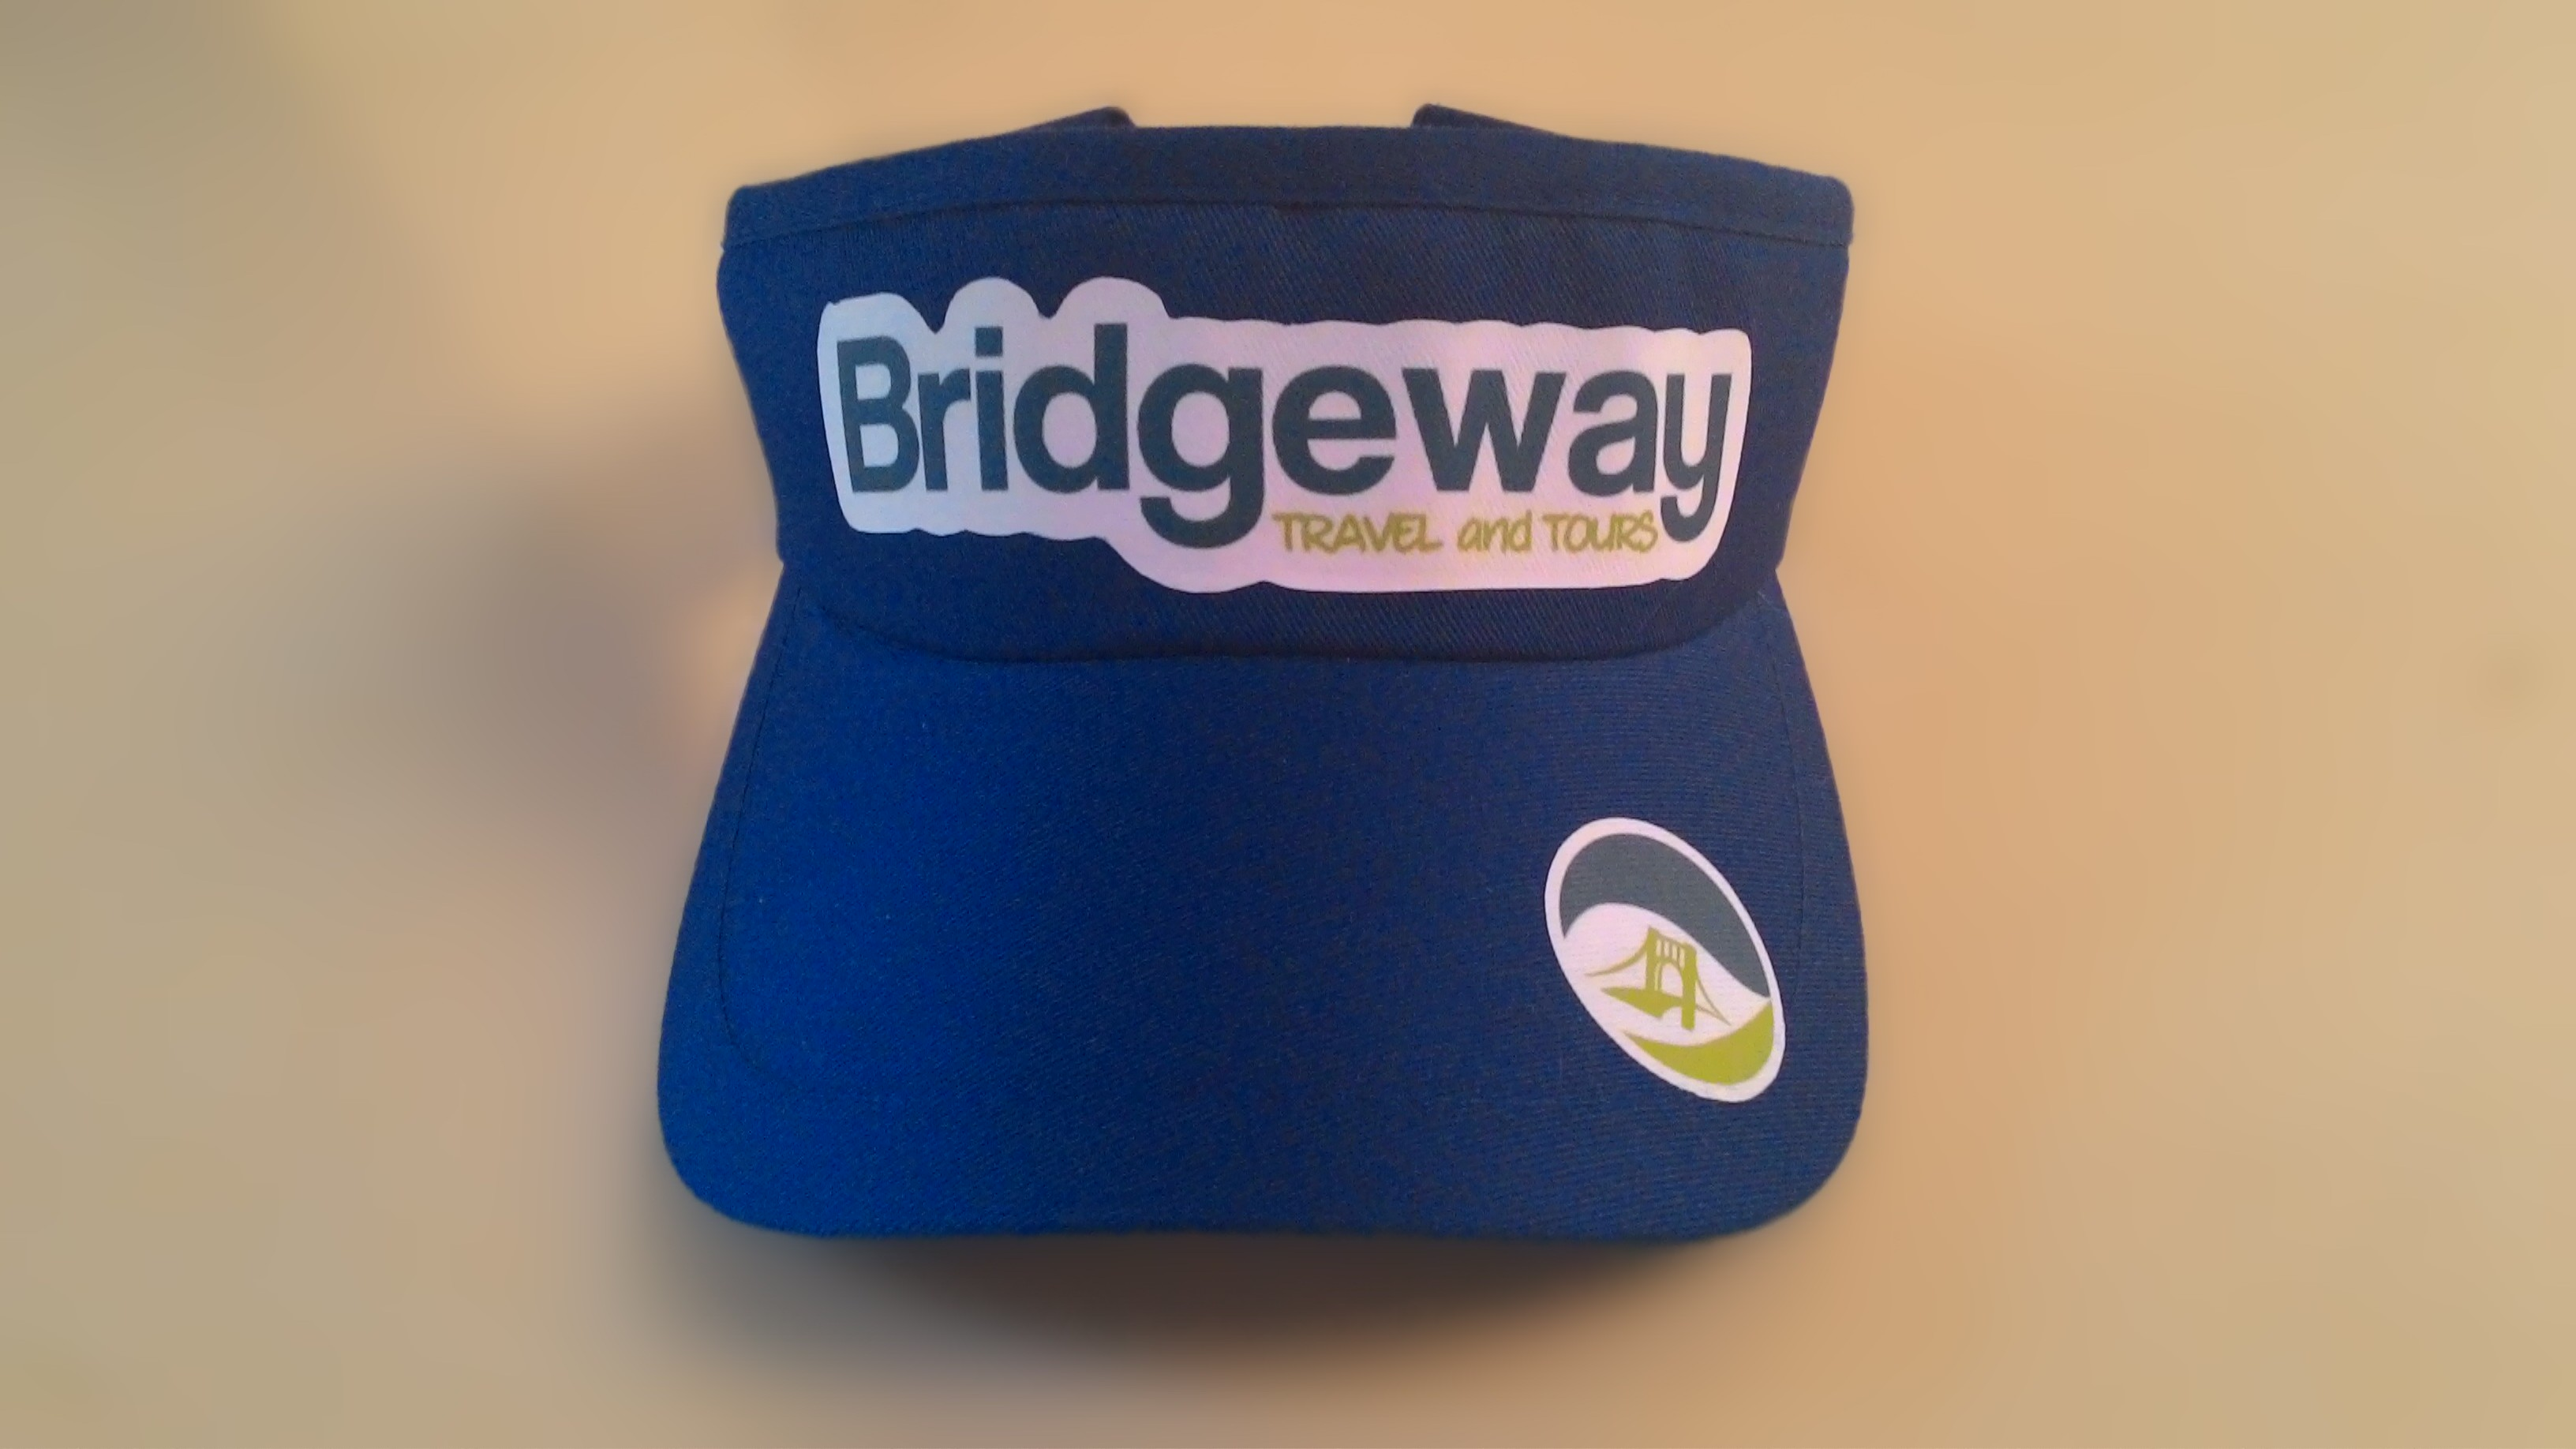 Bridgeway Travel and Tours